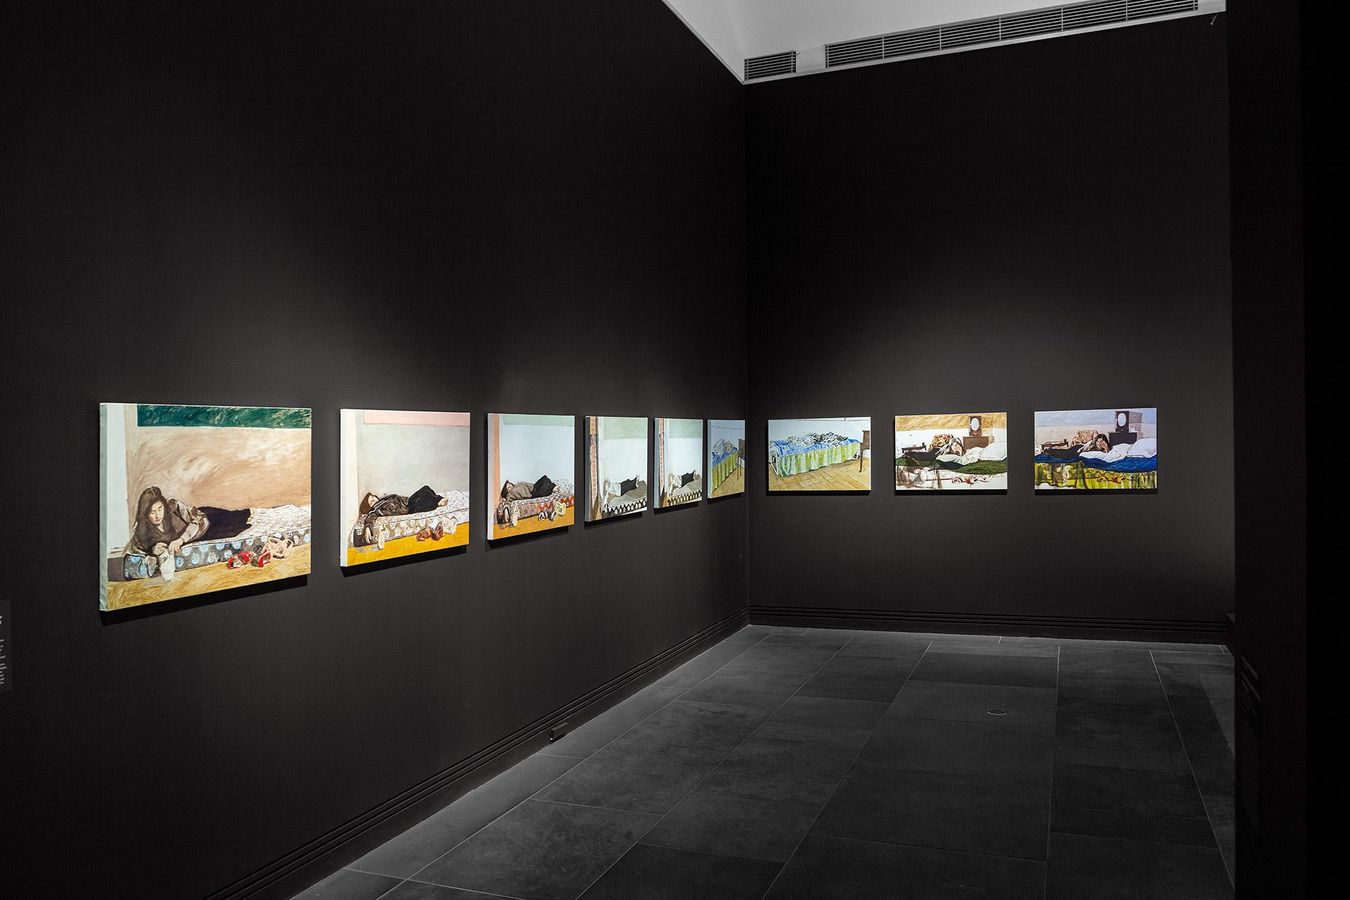 installation view: Ramsay Art Prize 2021 featuring I waited for me to believe in go or for you to send gloves for the cold (Je tu il elle) by Nicola Smith, 2020; Art Gallery of South Australia, Adelaide; photo: Saul Steed.